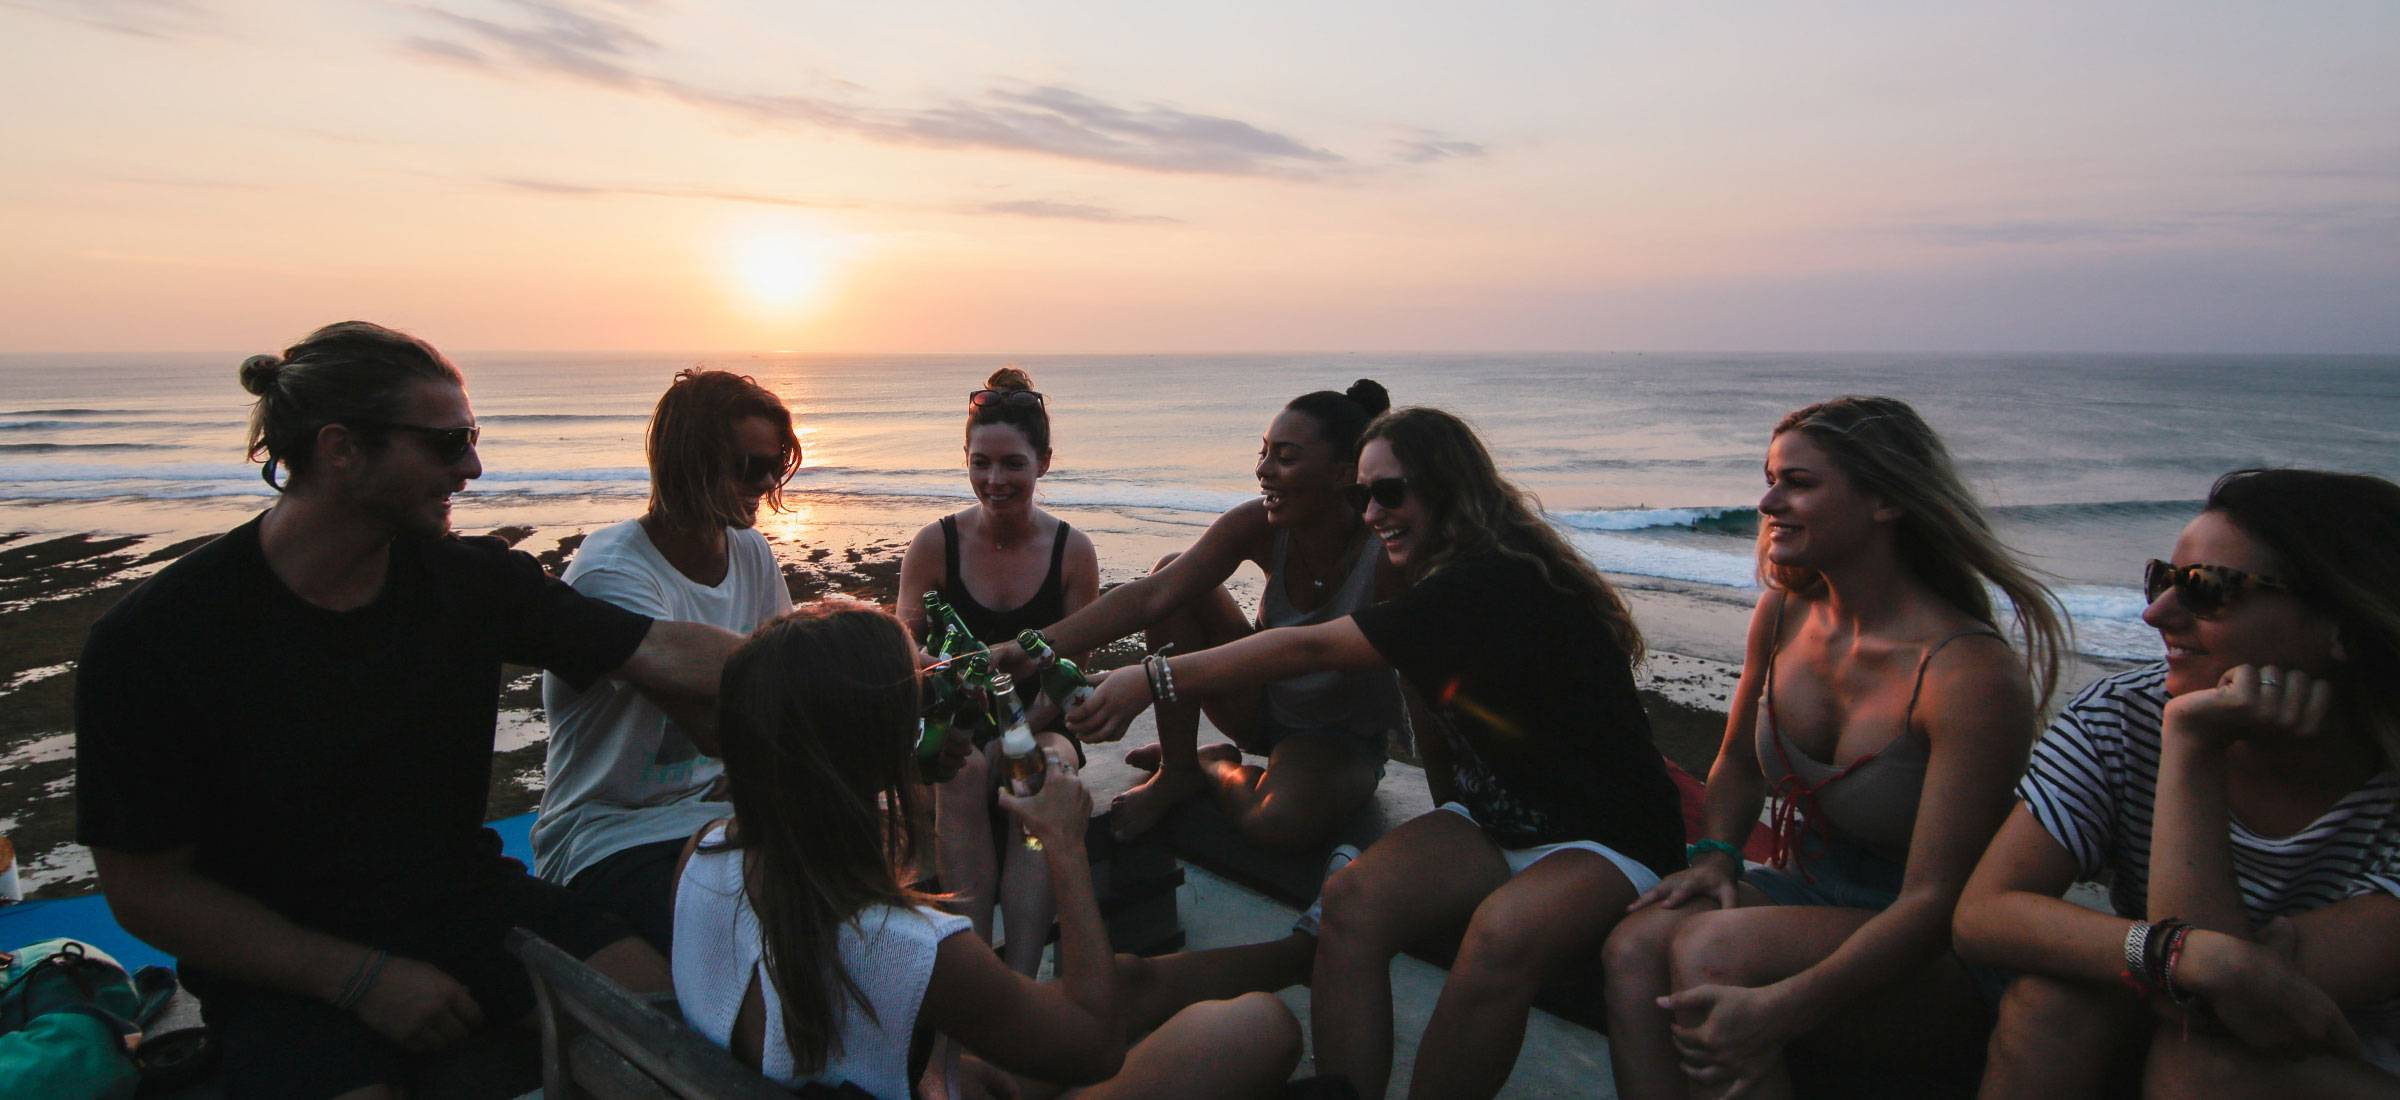 Bali surf group travel experience